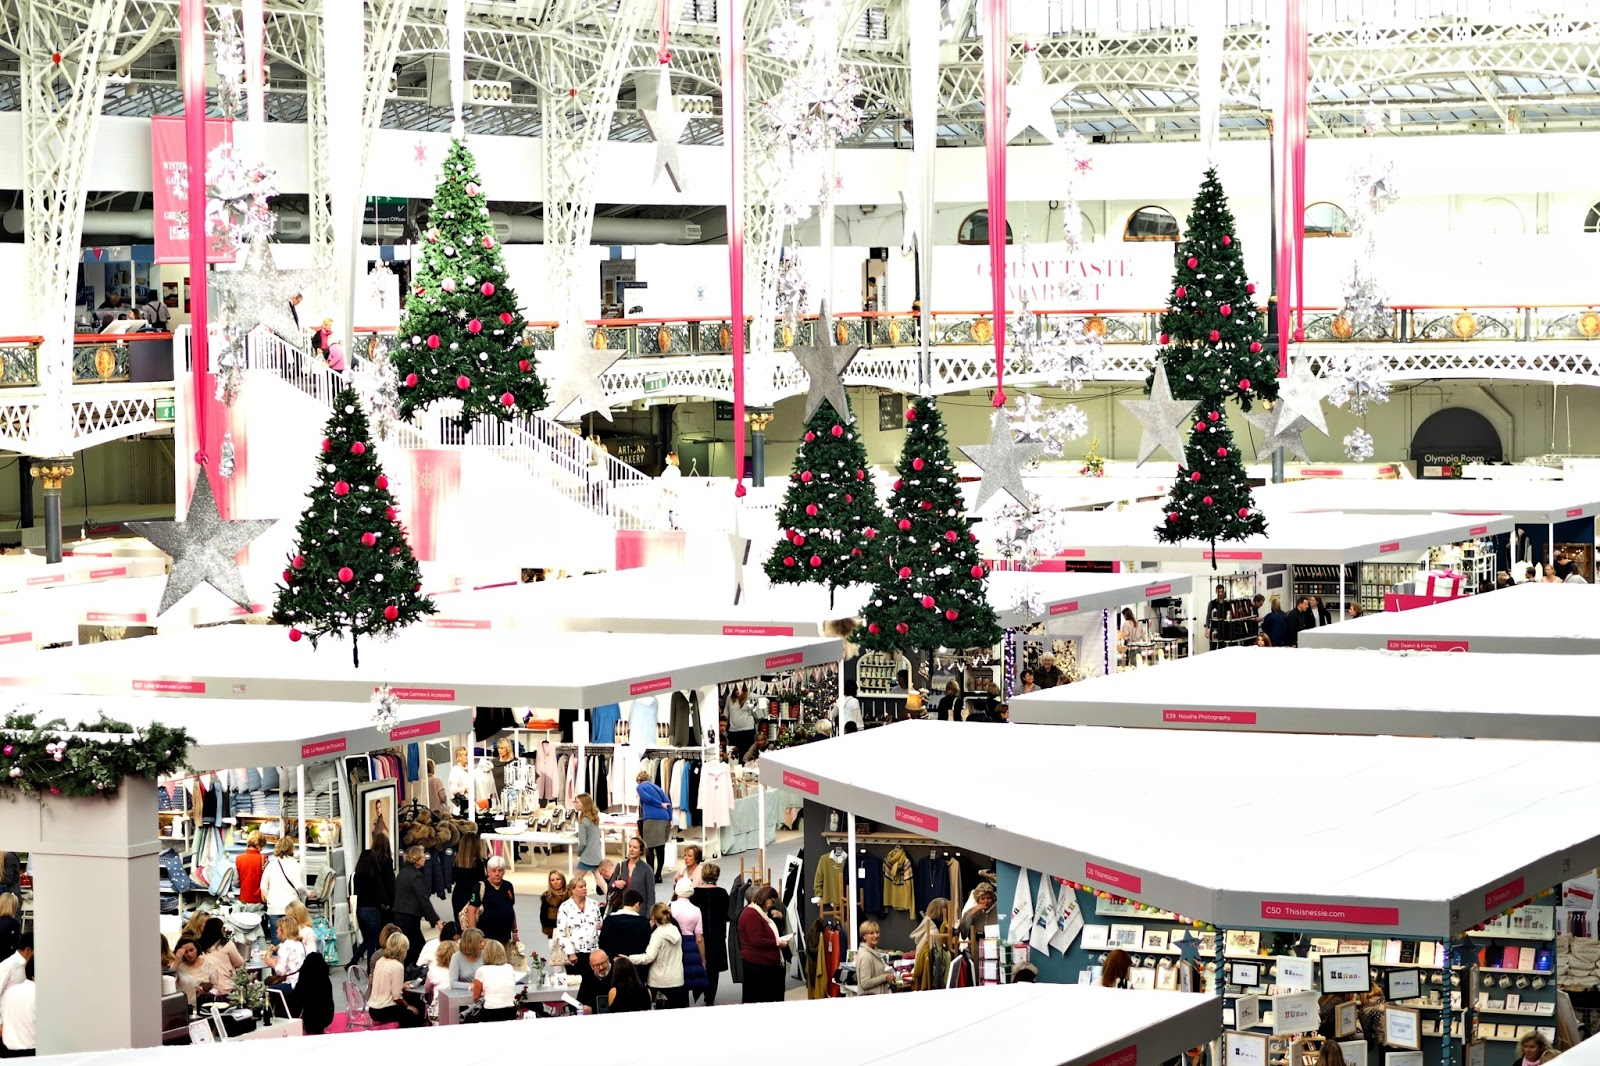 Spirit of Christmas Fair, London Olympia